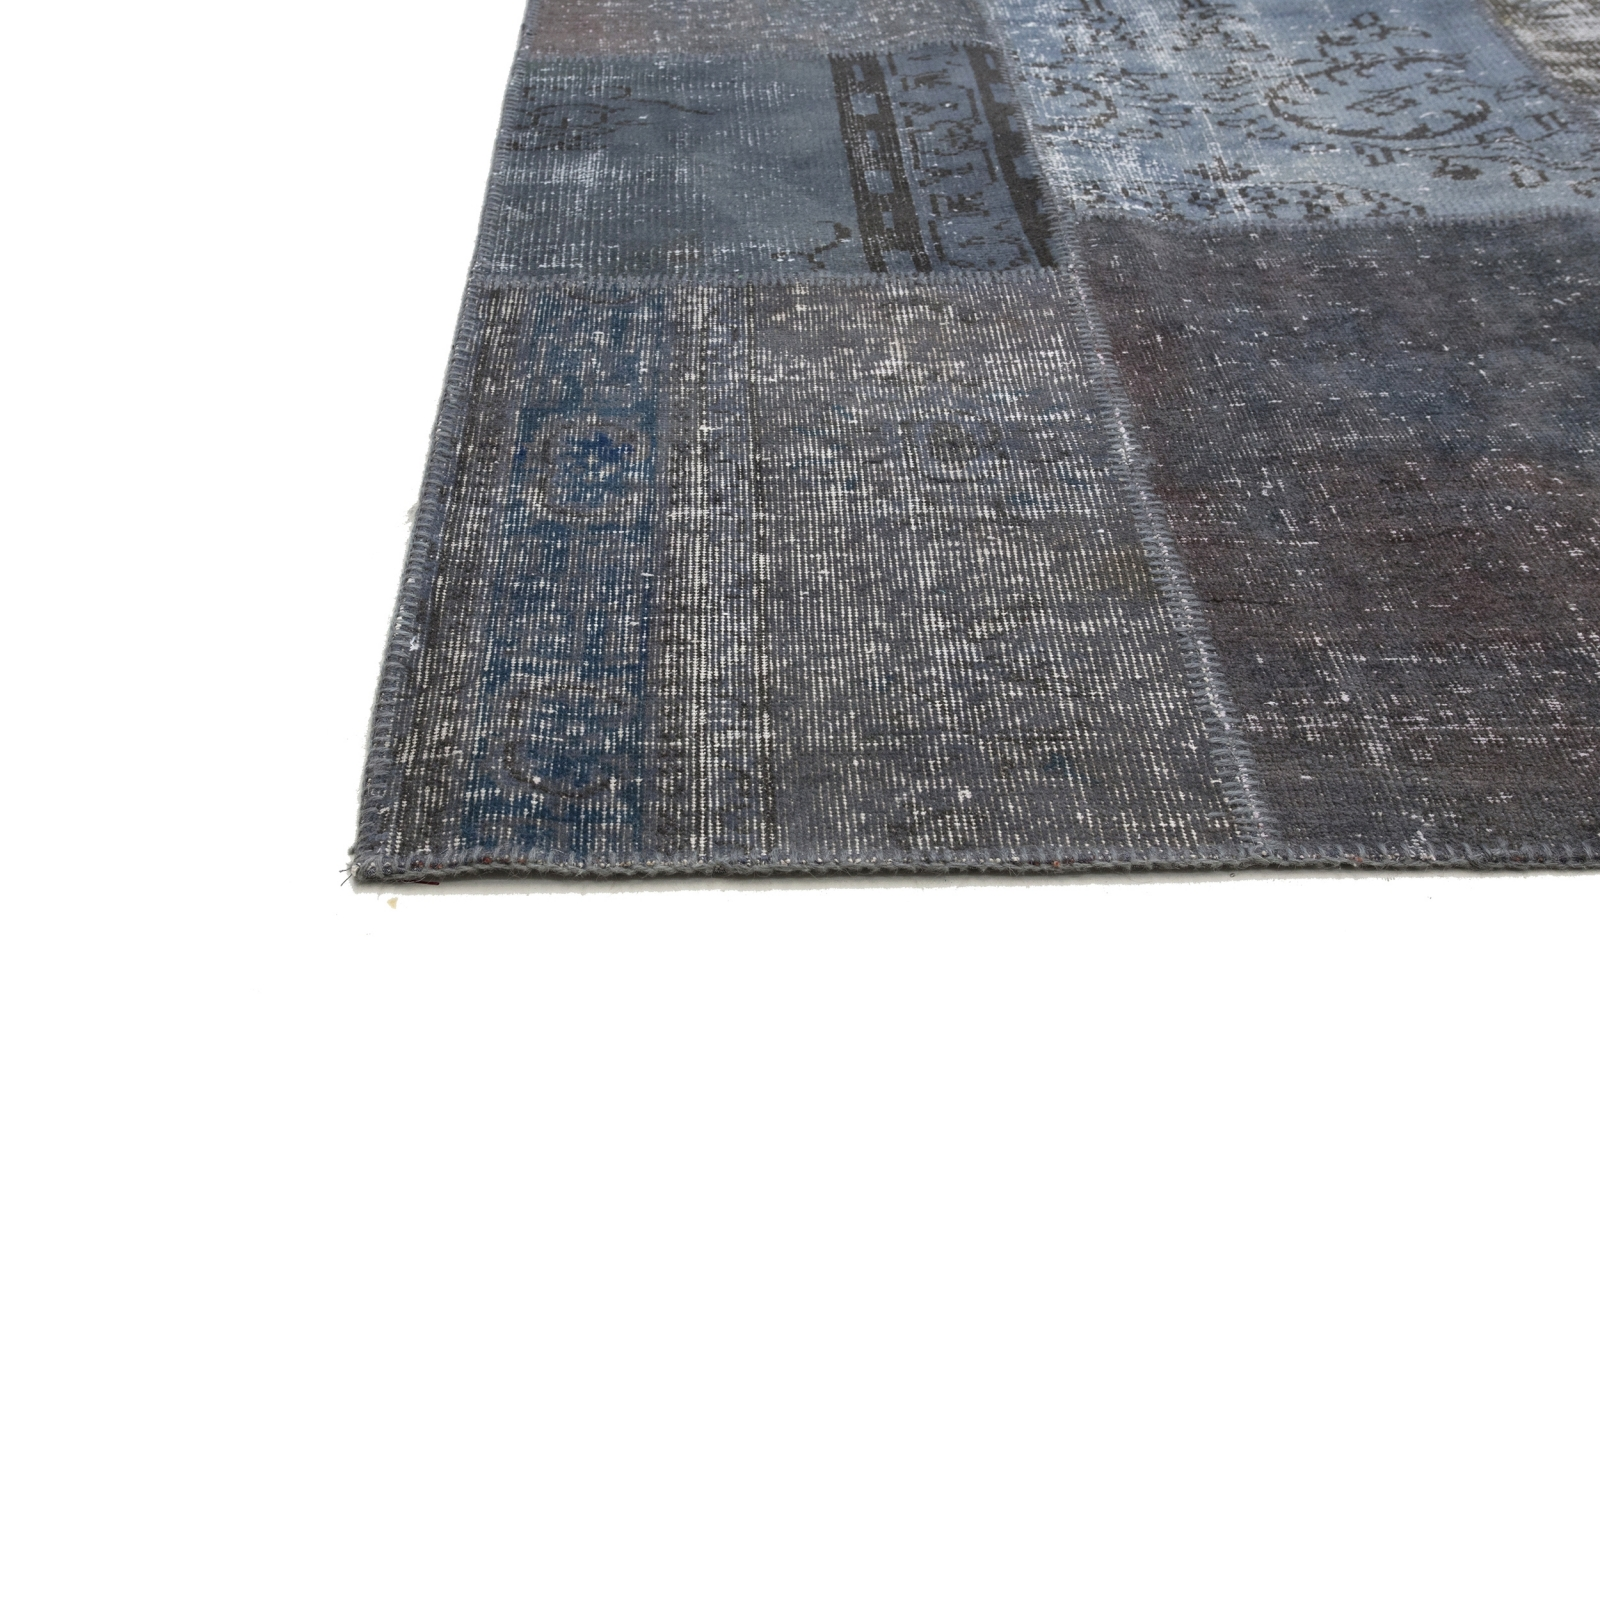 gris fonc vintage tapis de patchwork 197x303cm. Black Bedroom Furniture Sets. Home Design Ideas